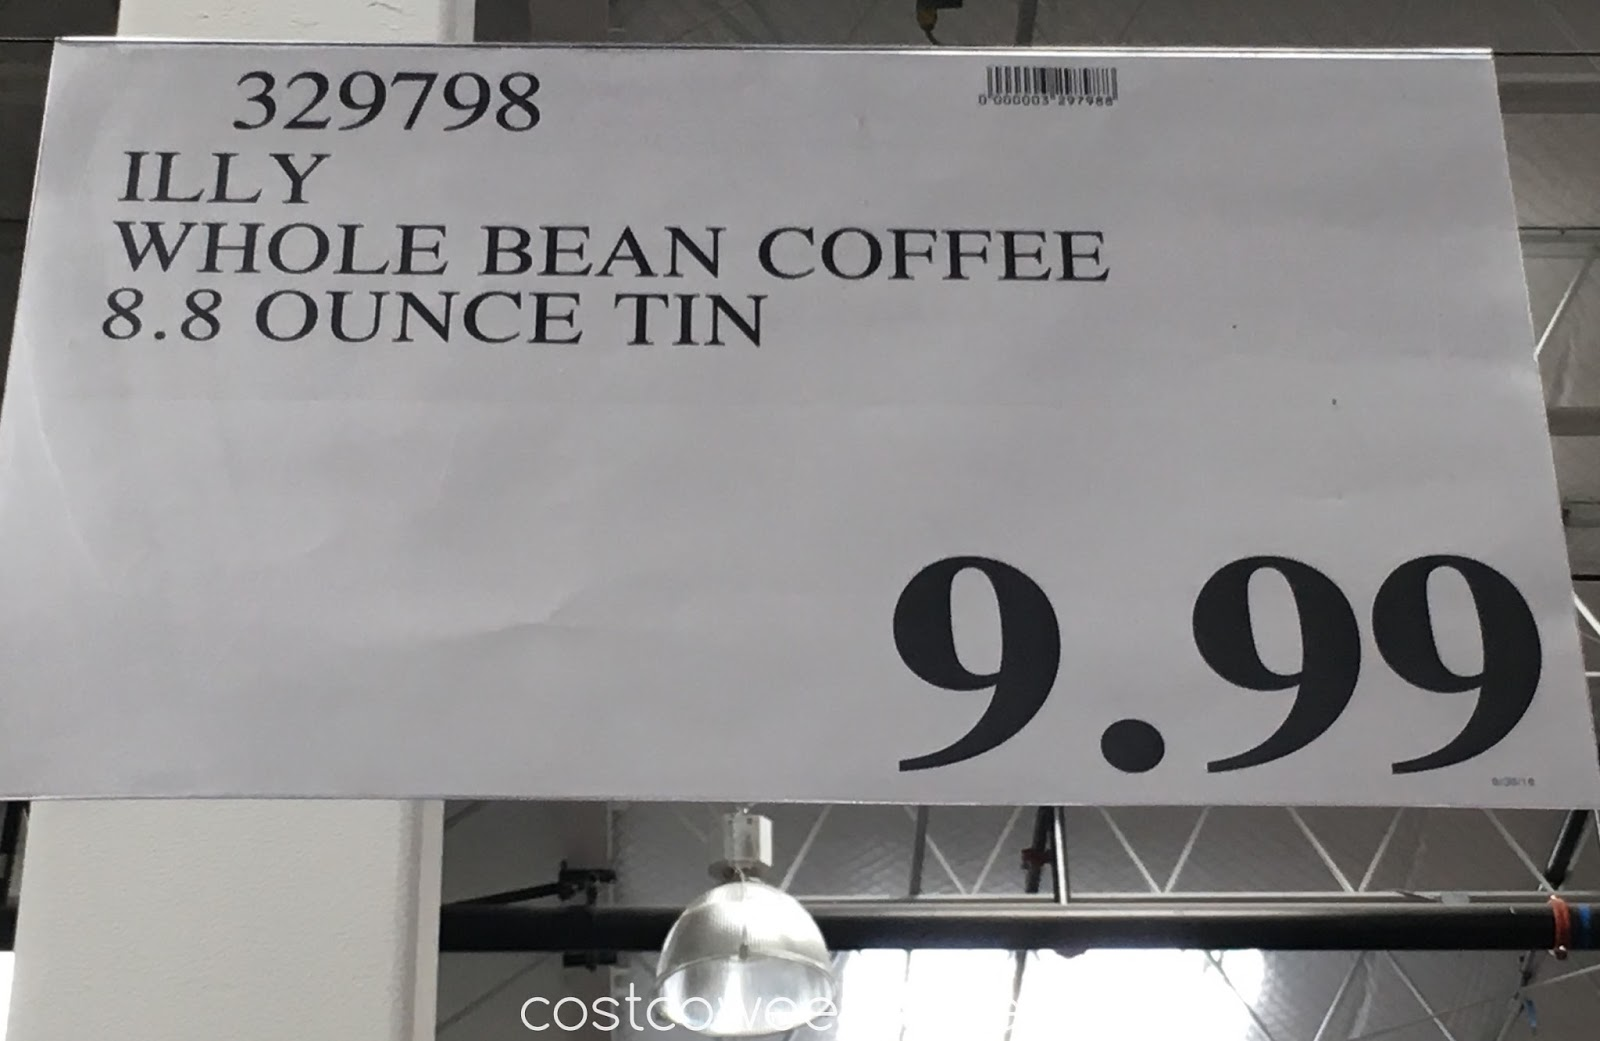 Deal for an 8.8 oz tin of Illy Whole Bean Coffee at Costco